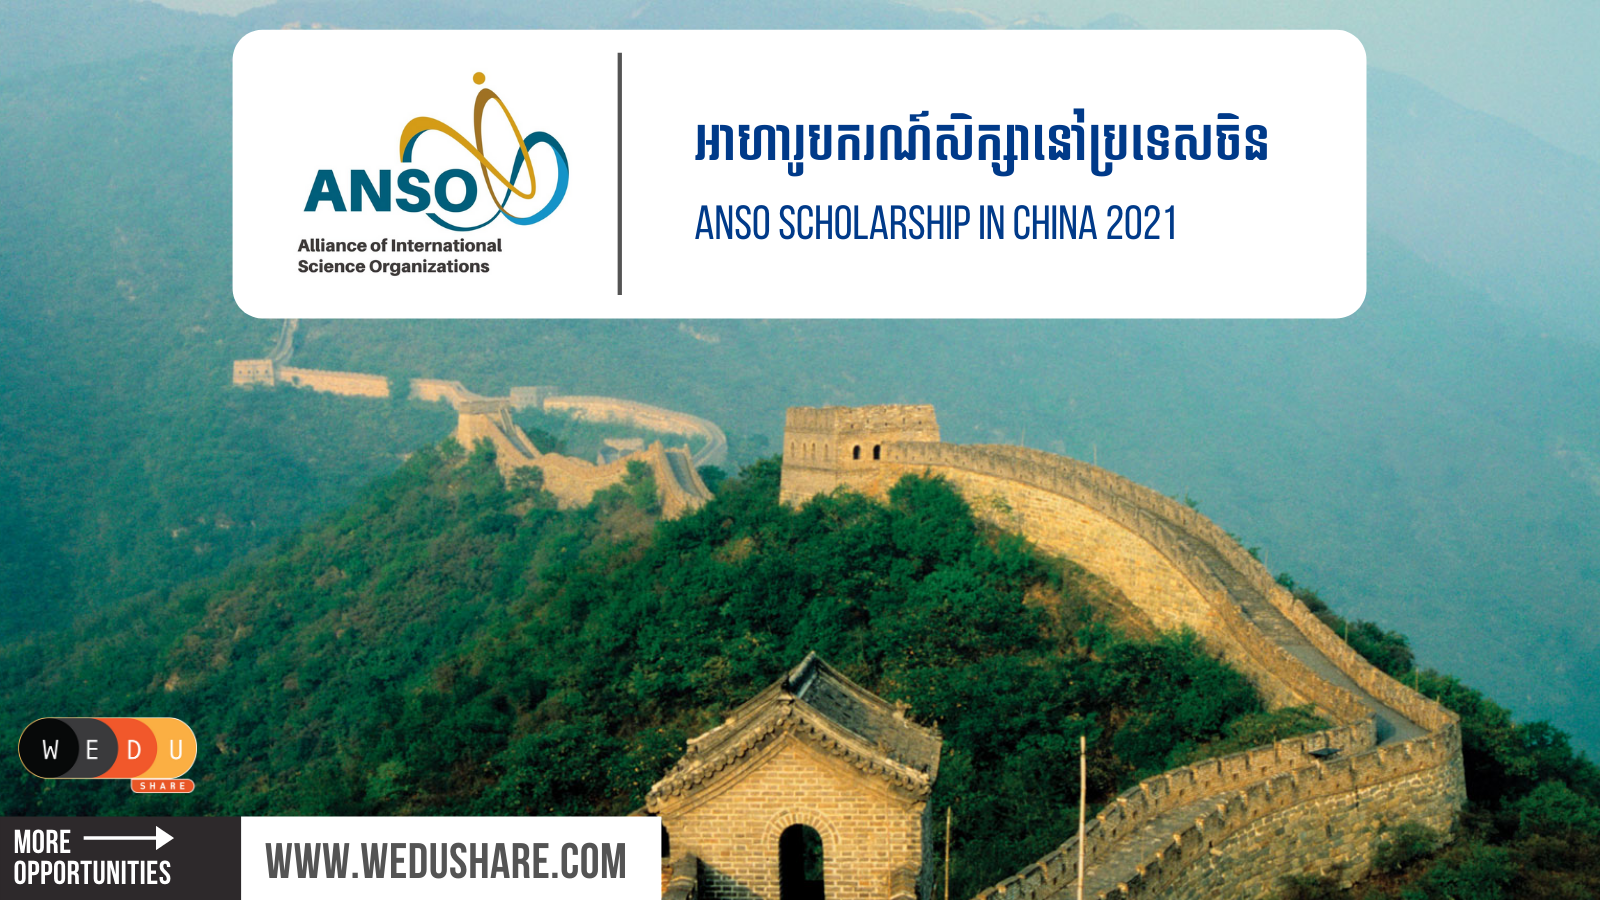 ANSO Scholarship in China 2021